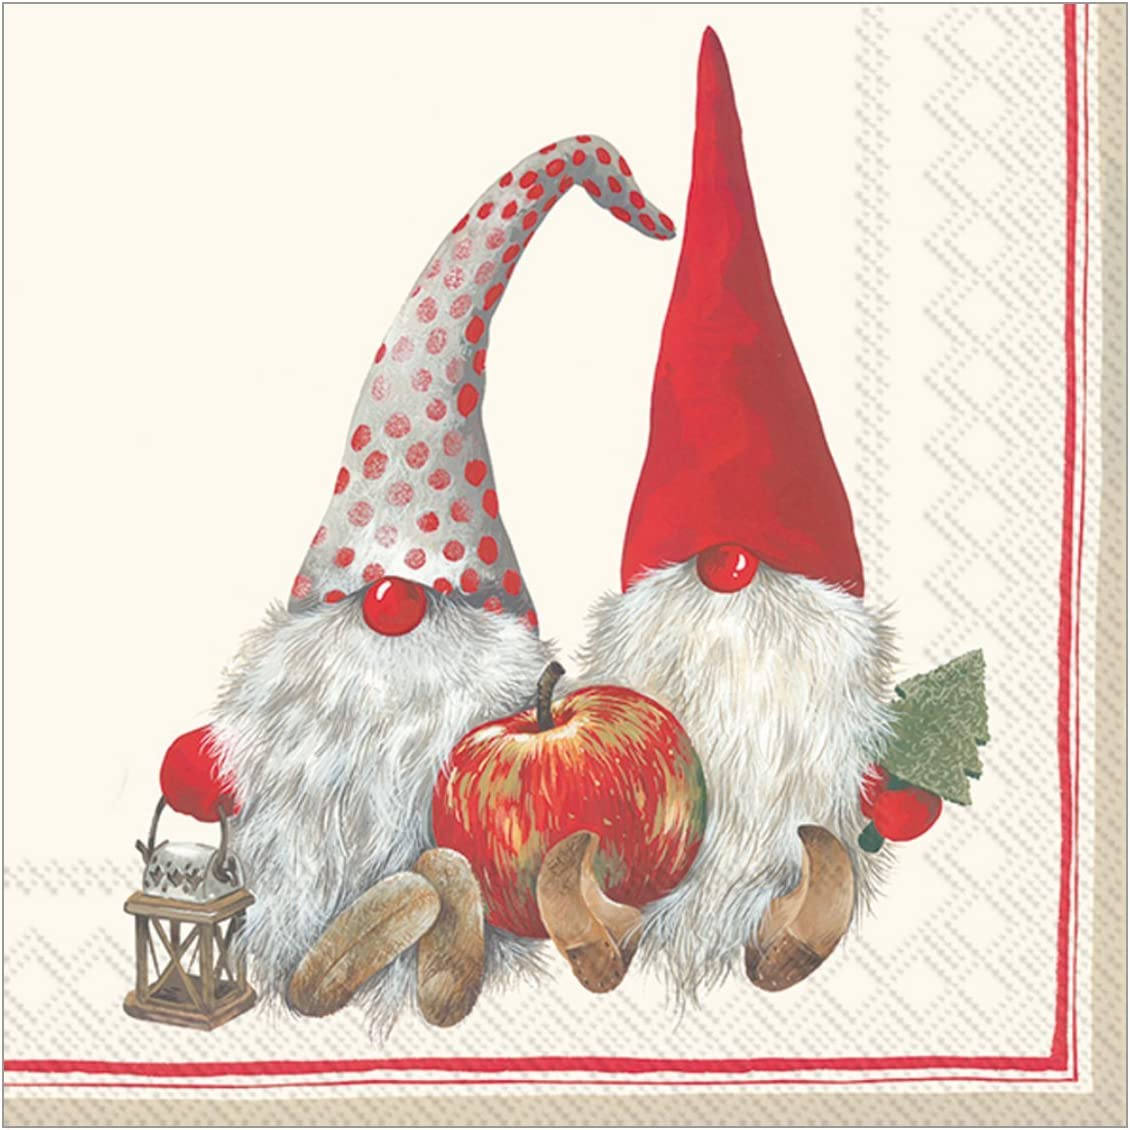 Boston International Holiday Paper Cocktail Napkins, 20-Count, Friendly Tomte - Red